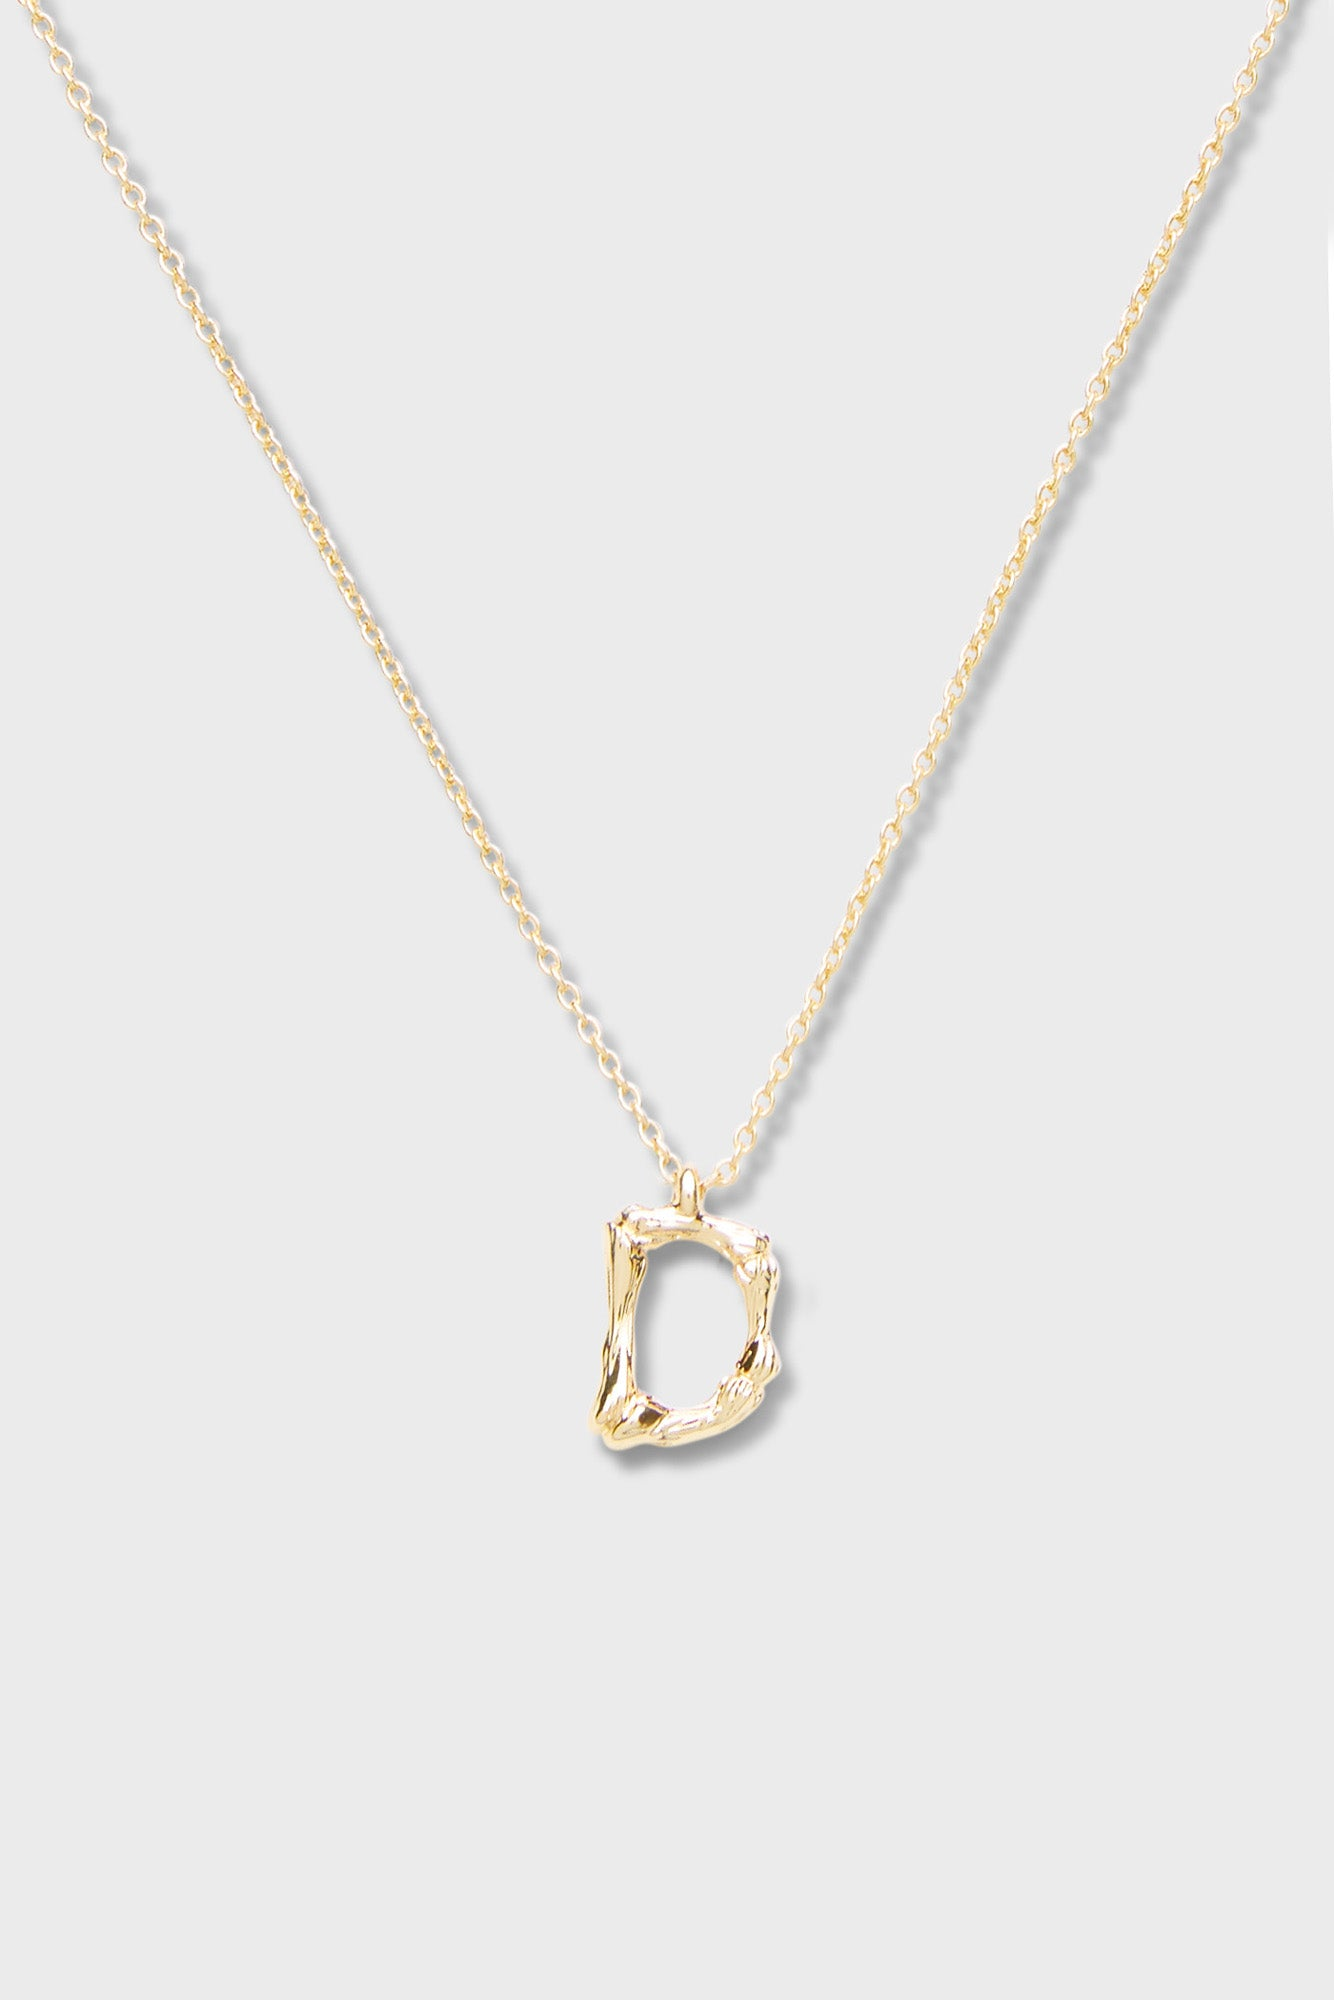 D - Initial Necklace